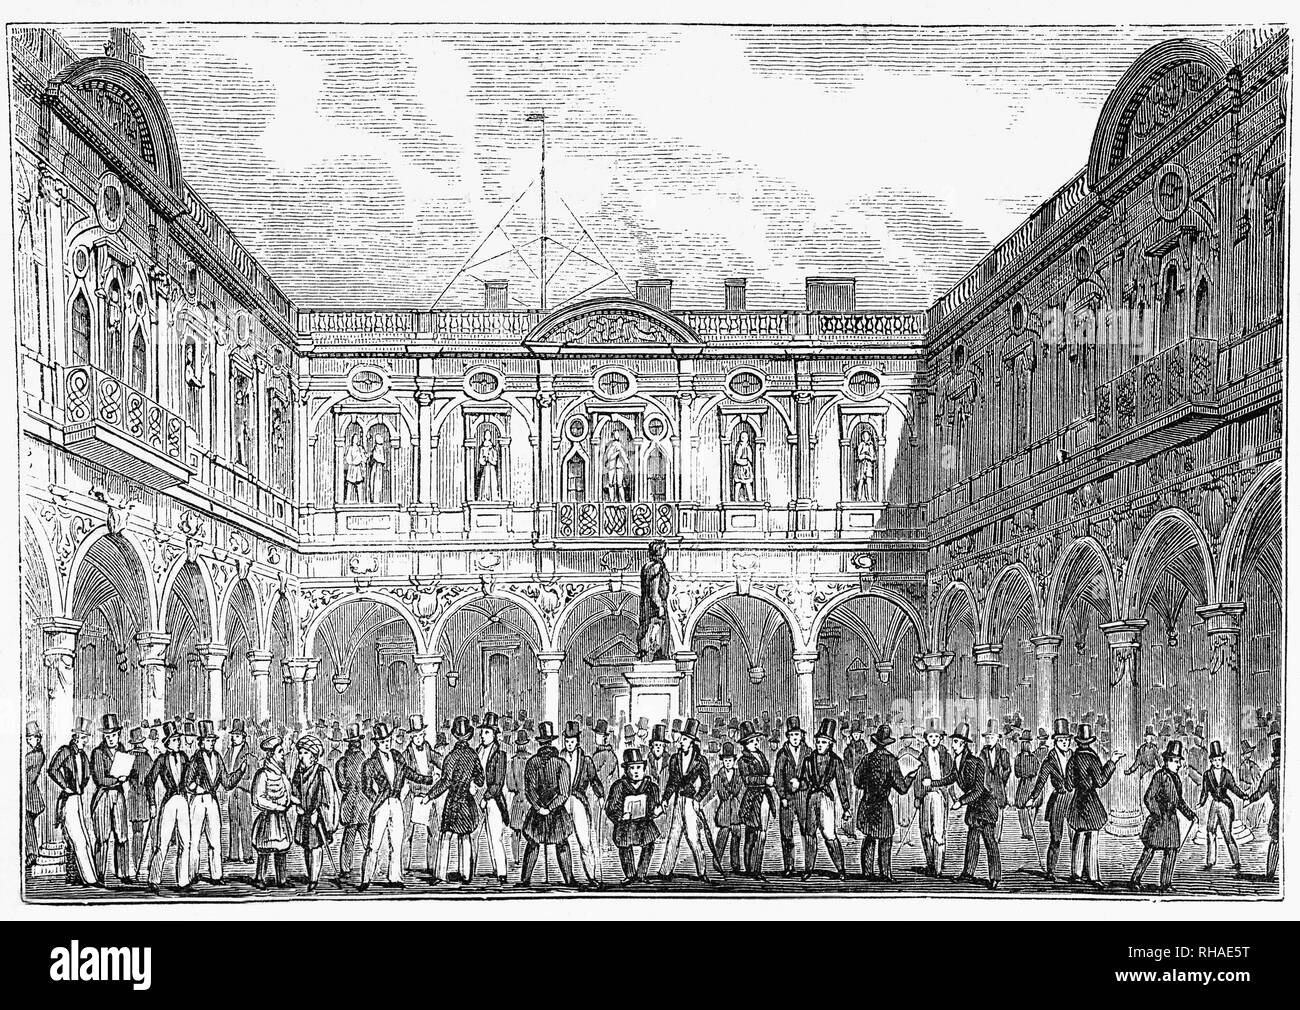 The Royal Exchange in  Cornhill and Threadneedle Street, London was founded in the 16th century by the merchant Thomas Gresham as a centre of commerce for the City of London. It has twice been destroyed by fire and subsequently rebuilt. The illustration shows the second complex built on the site, designed by Edward Jarman, opened in 1669 and burned down in 1838. Traditionally, the steps of the Royal Exchange is the place where royal proclamations, dissolution of parliament;  death or abdication of a monarch; confirmation of the next monarch's accession to the throne are read out. - Stock Image